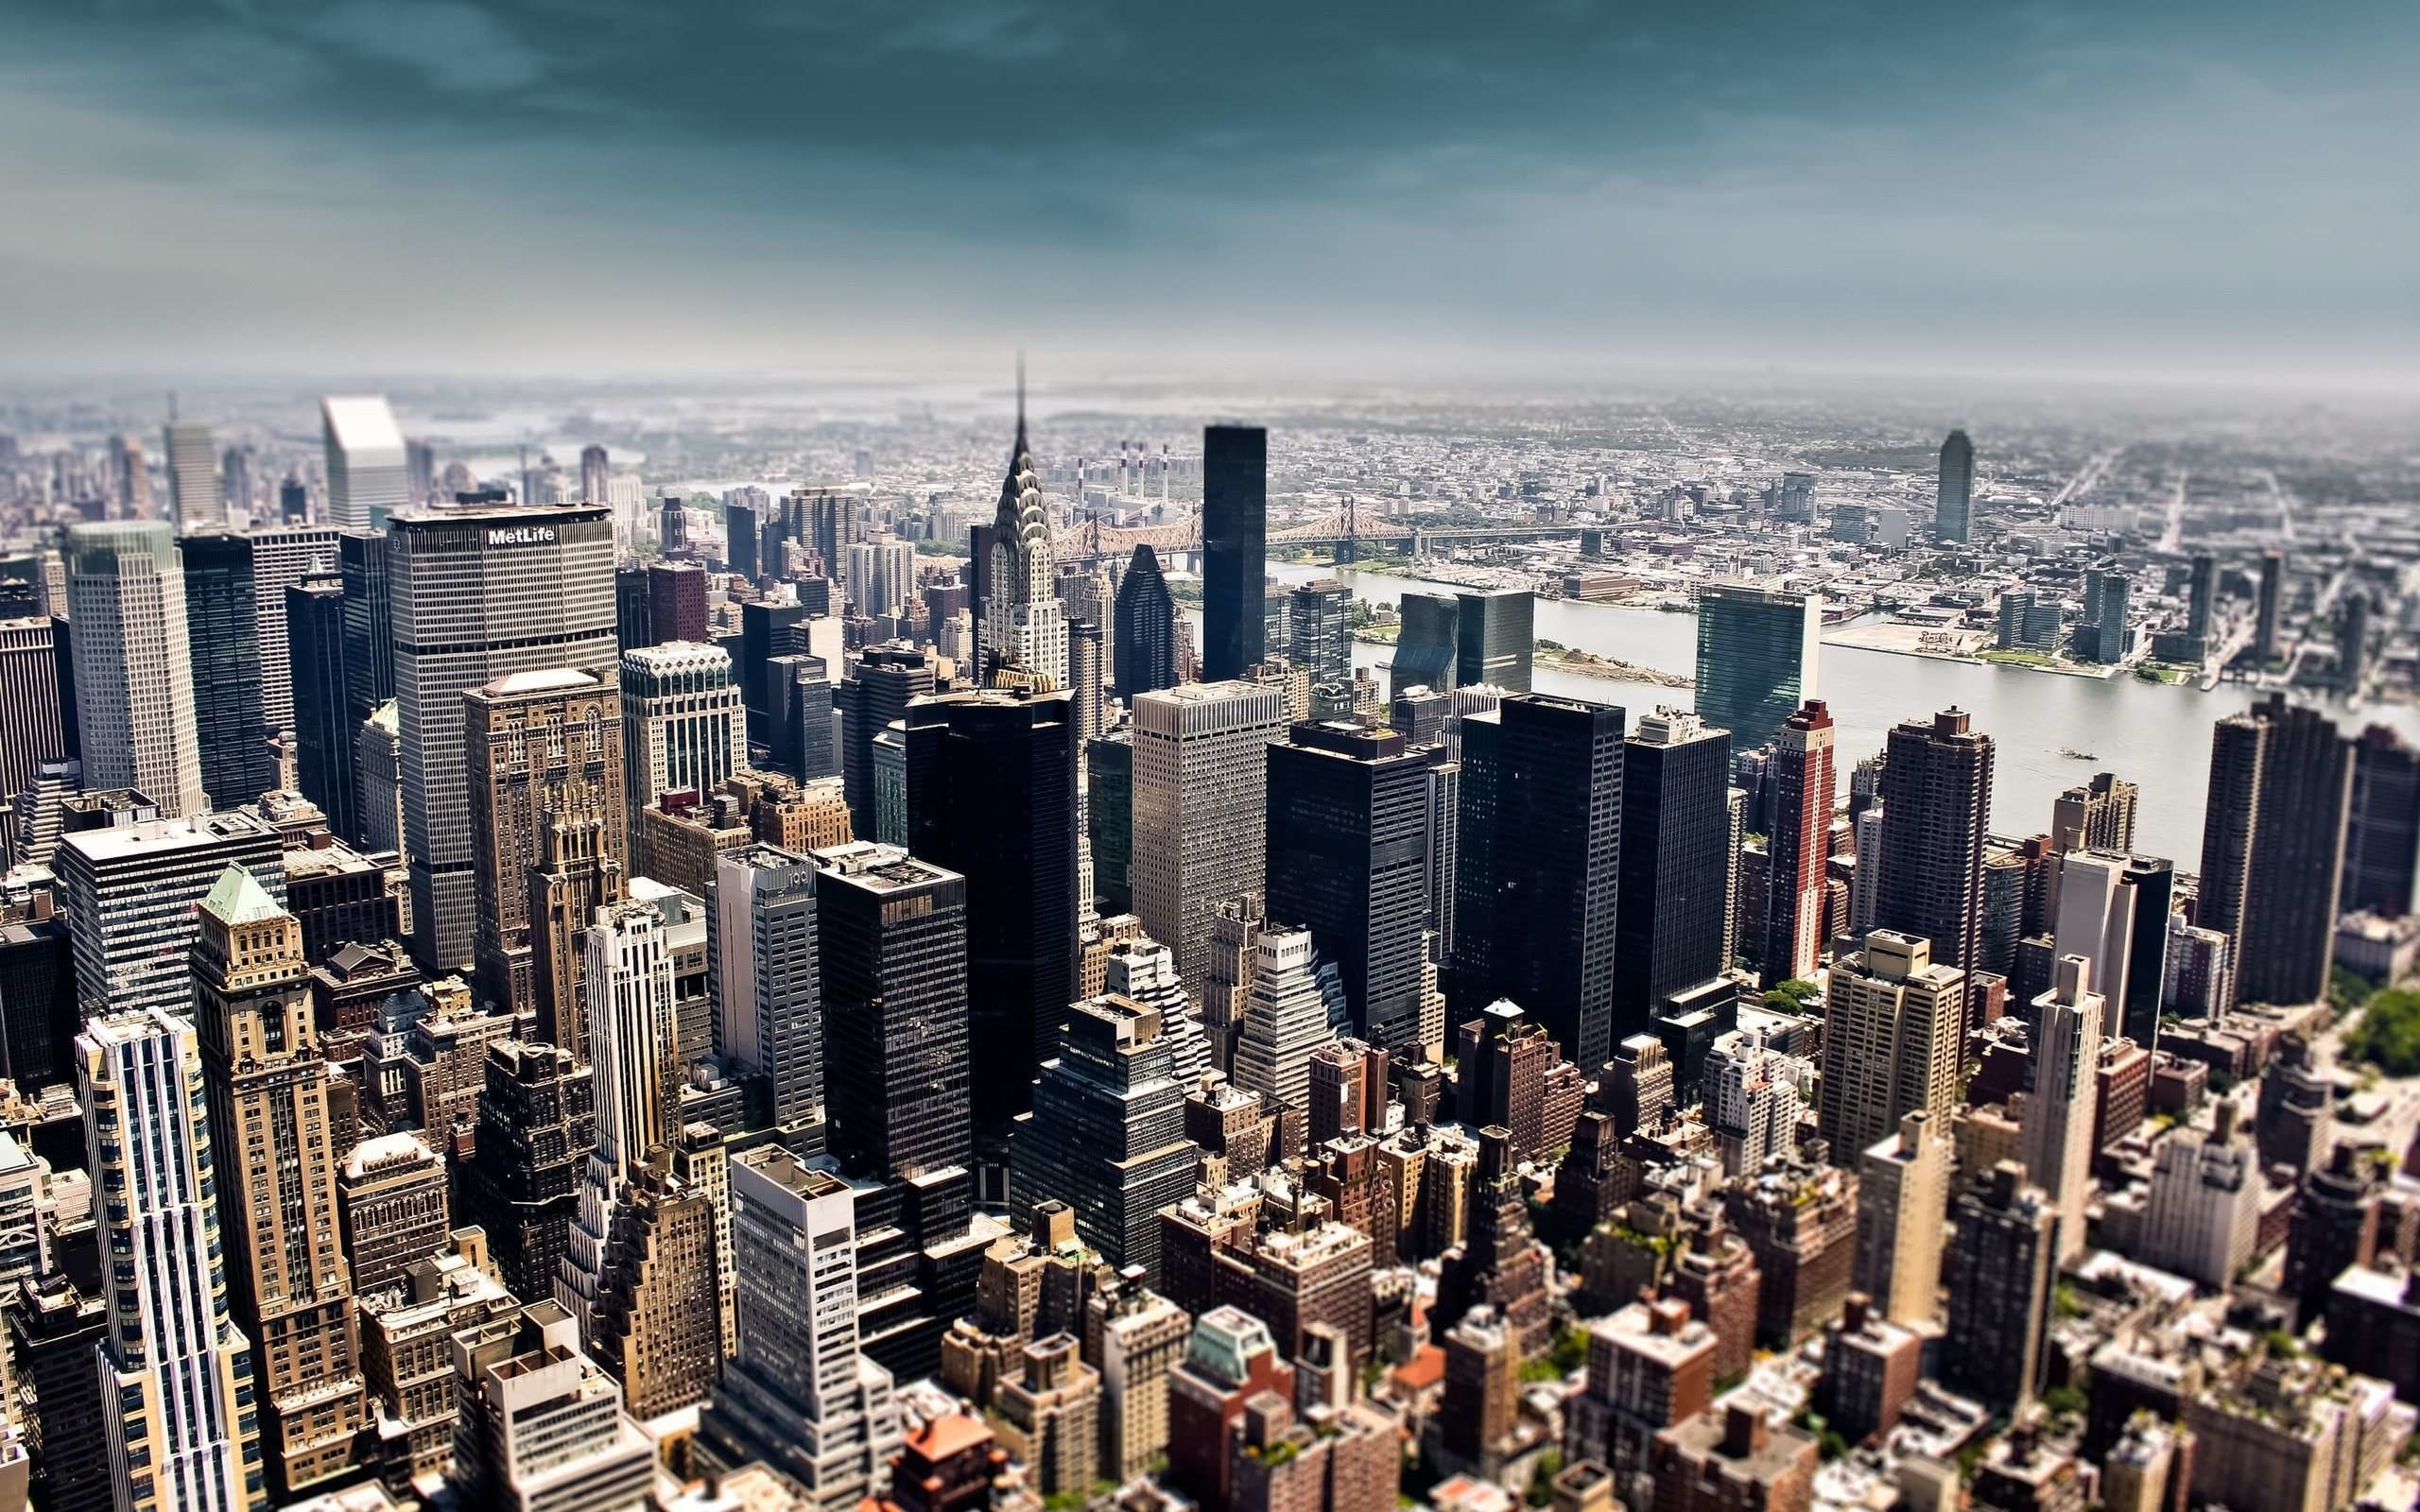 2560x1600 wallpaper hd wallpapersafari; backgrounds for wall street new york  backgrounds www .